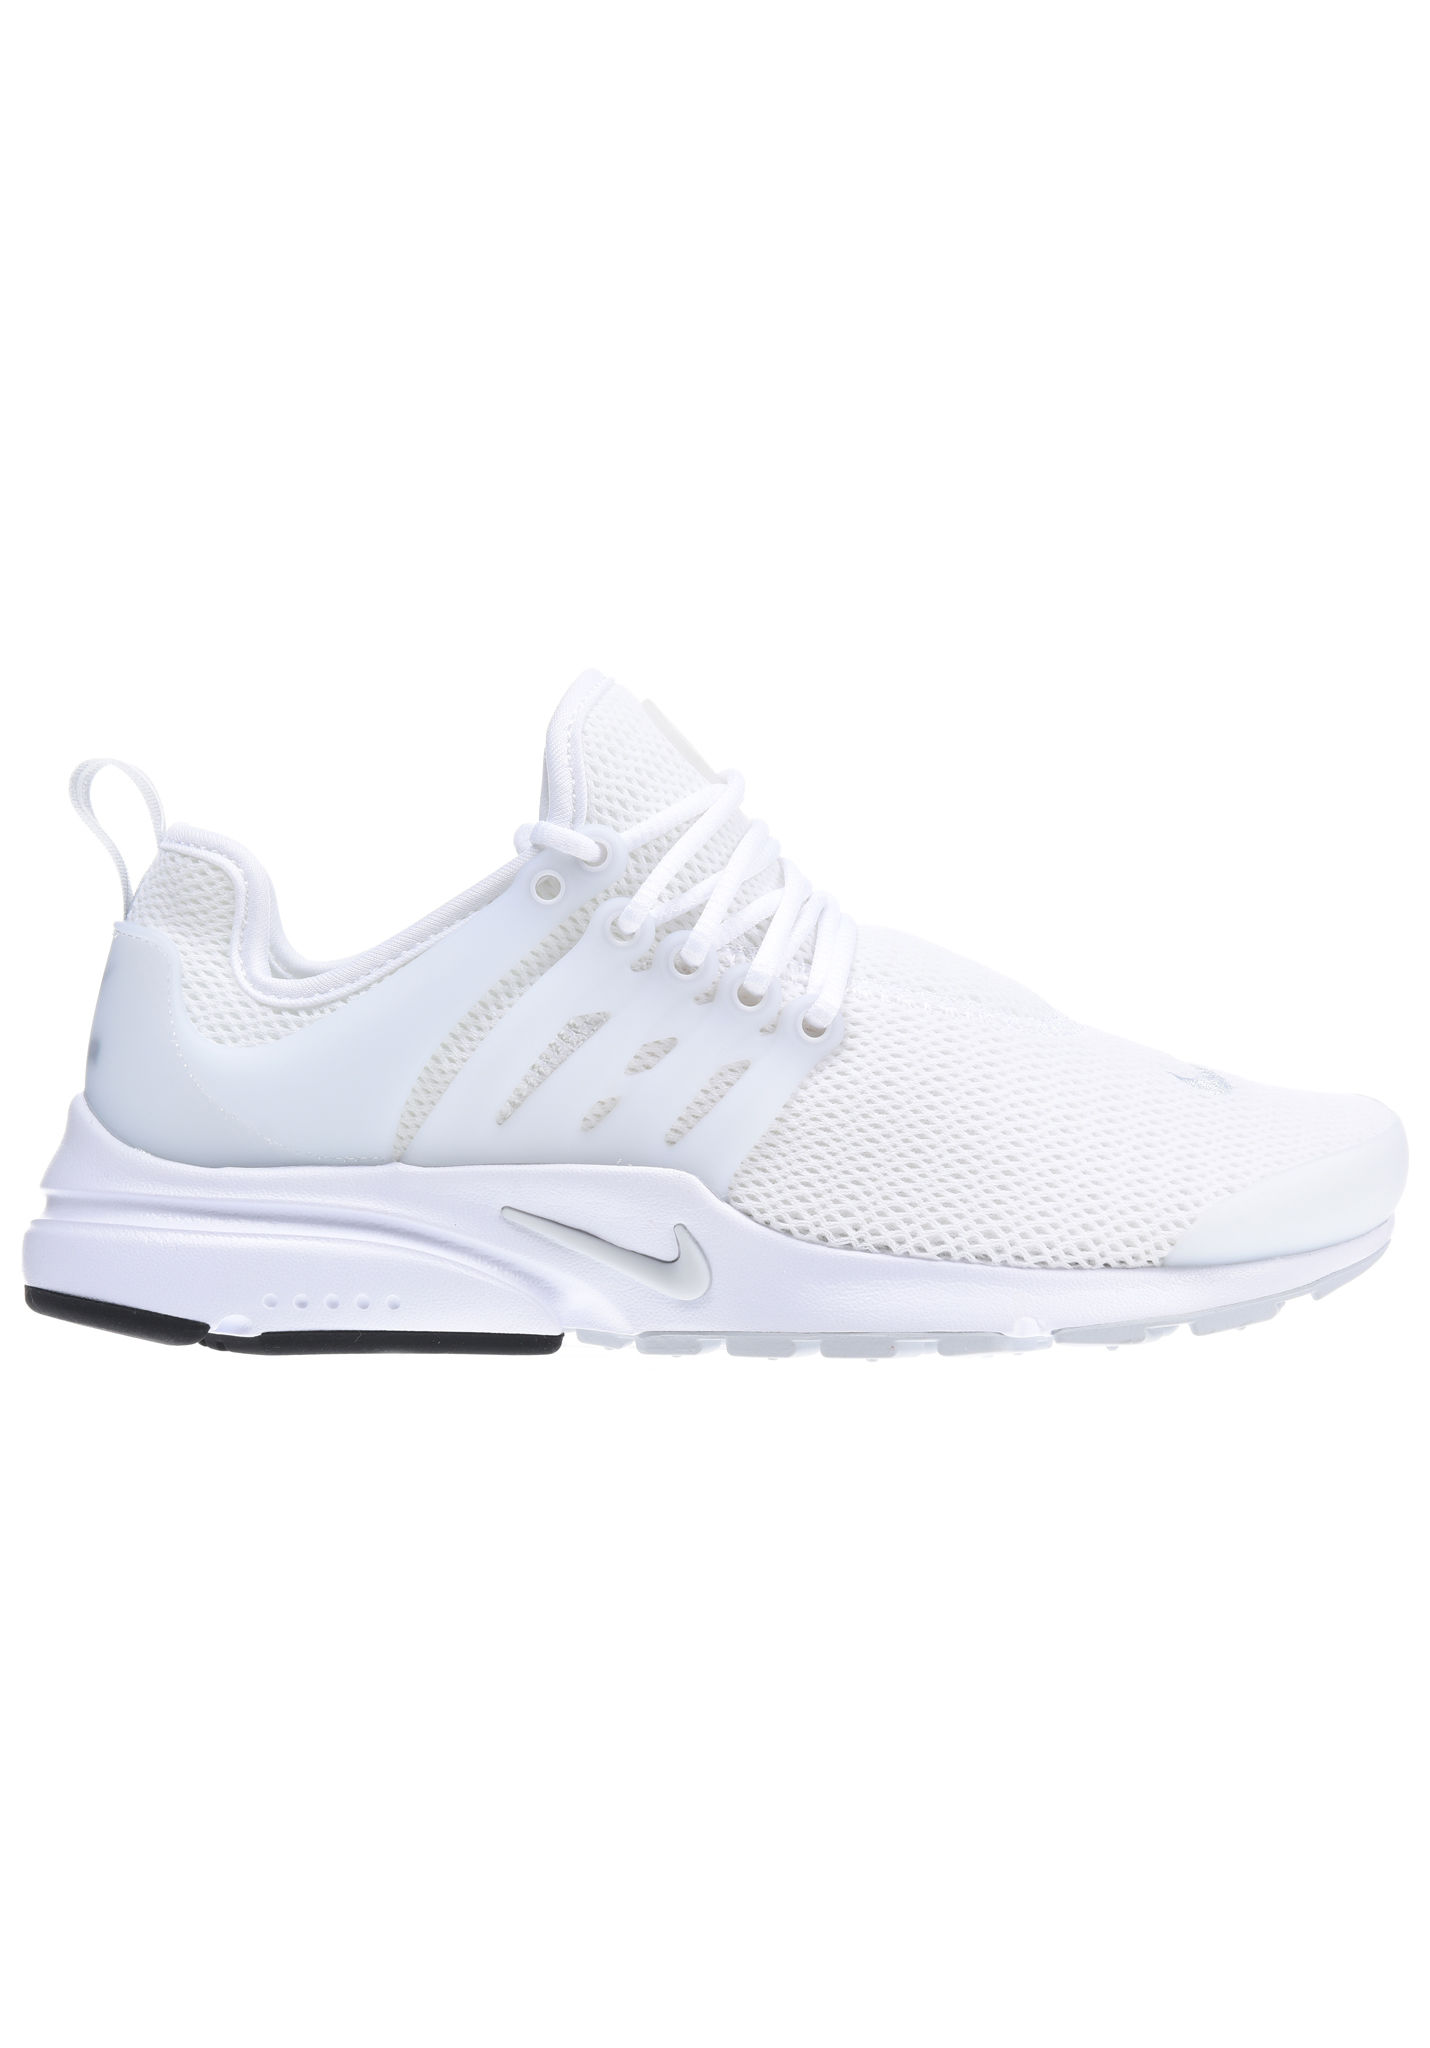 on sale 3ab9e e86f9 nike presto damen